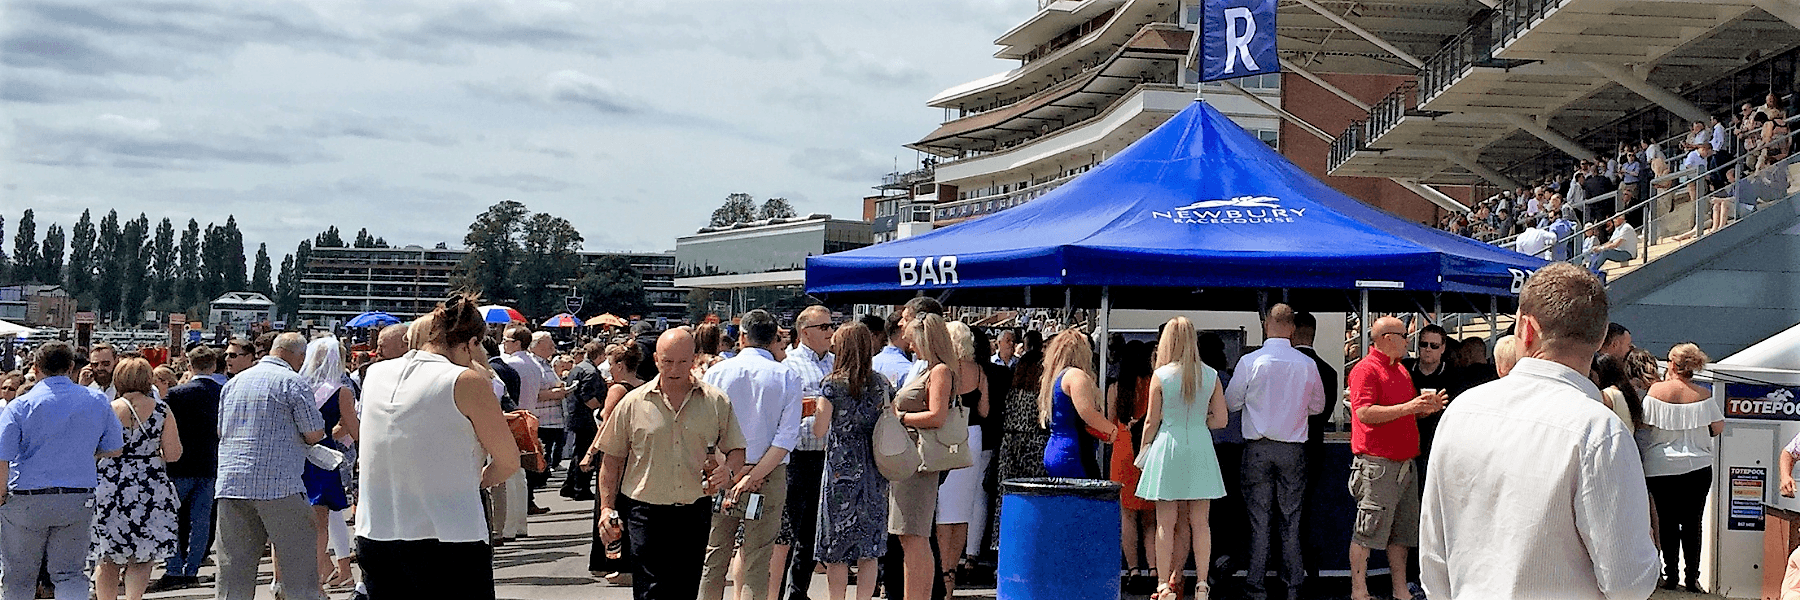 <p>Event, Mobile &amp; Stadia Bar &#8211; Tents &amp; Marquees &#8211; Octagonal Pavilion &#8211; Event Bar</p> <p>&nbsp;</p> <p>Ideally suited as a Premium Drinks outdoor event bar for racecourse or other high-profile sporting events.</p> <p>&nbsp;</p> <p>Branding to suit venue, event or drinks brand</p>